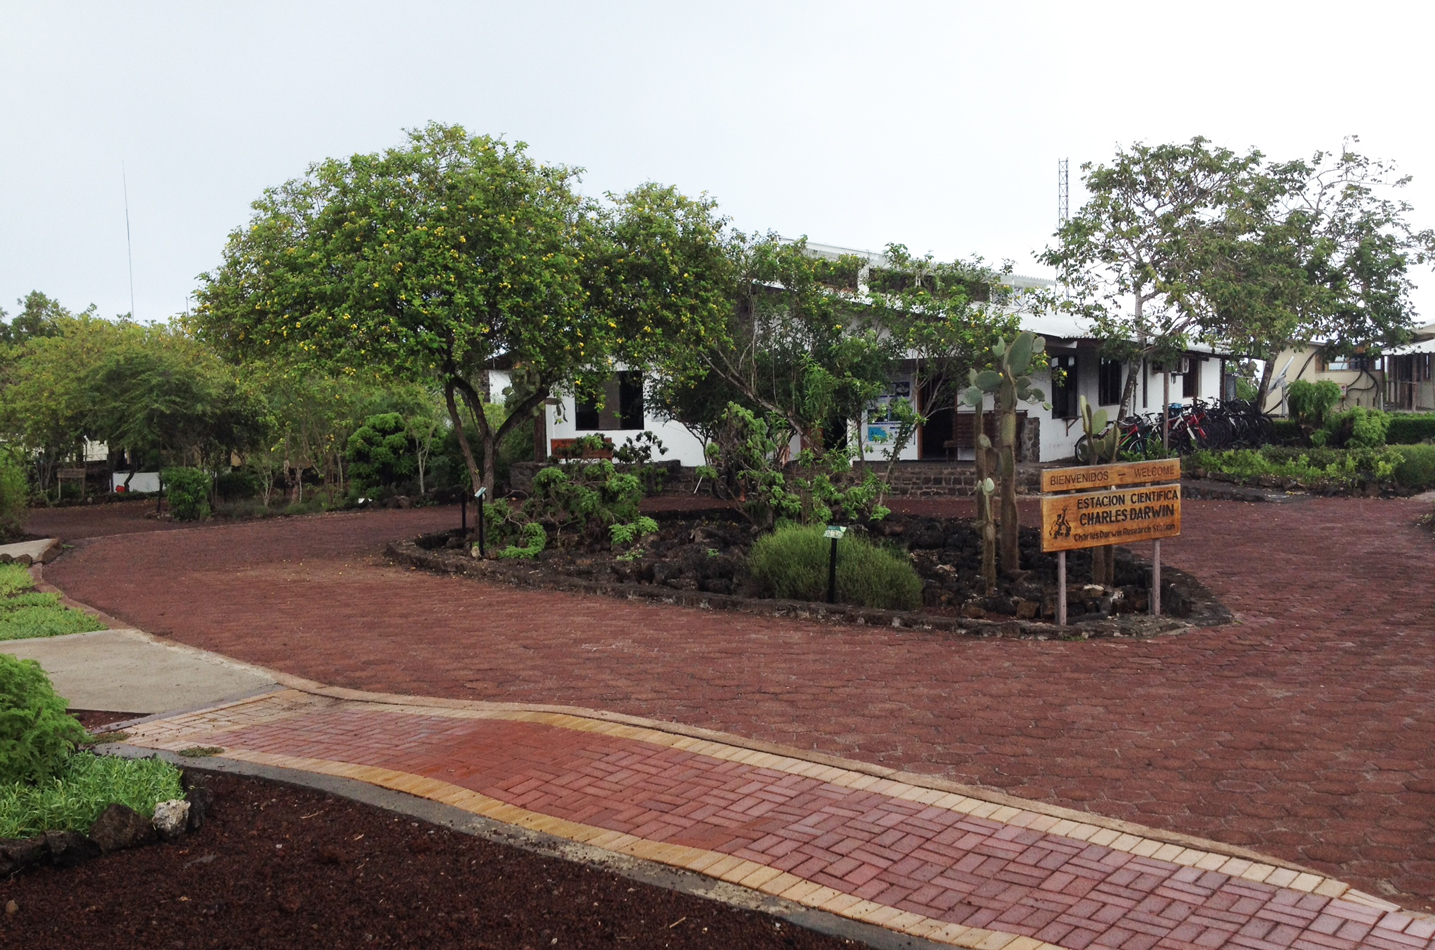 At the Darwin Research Center